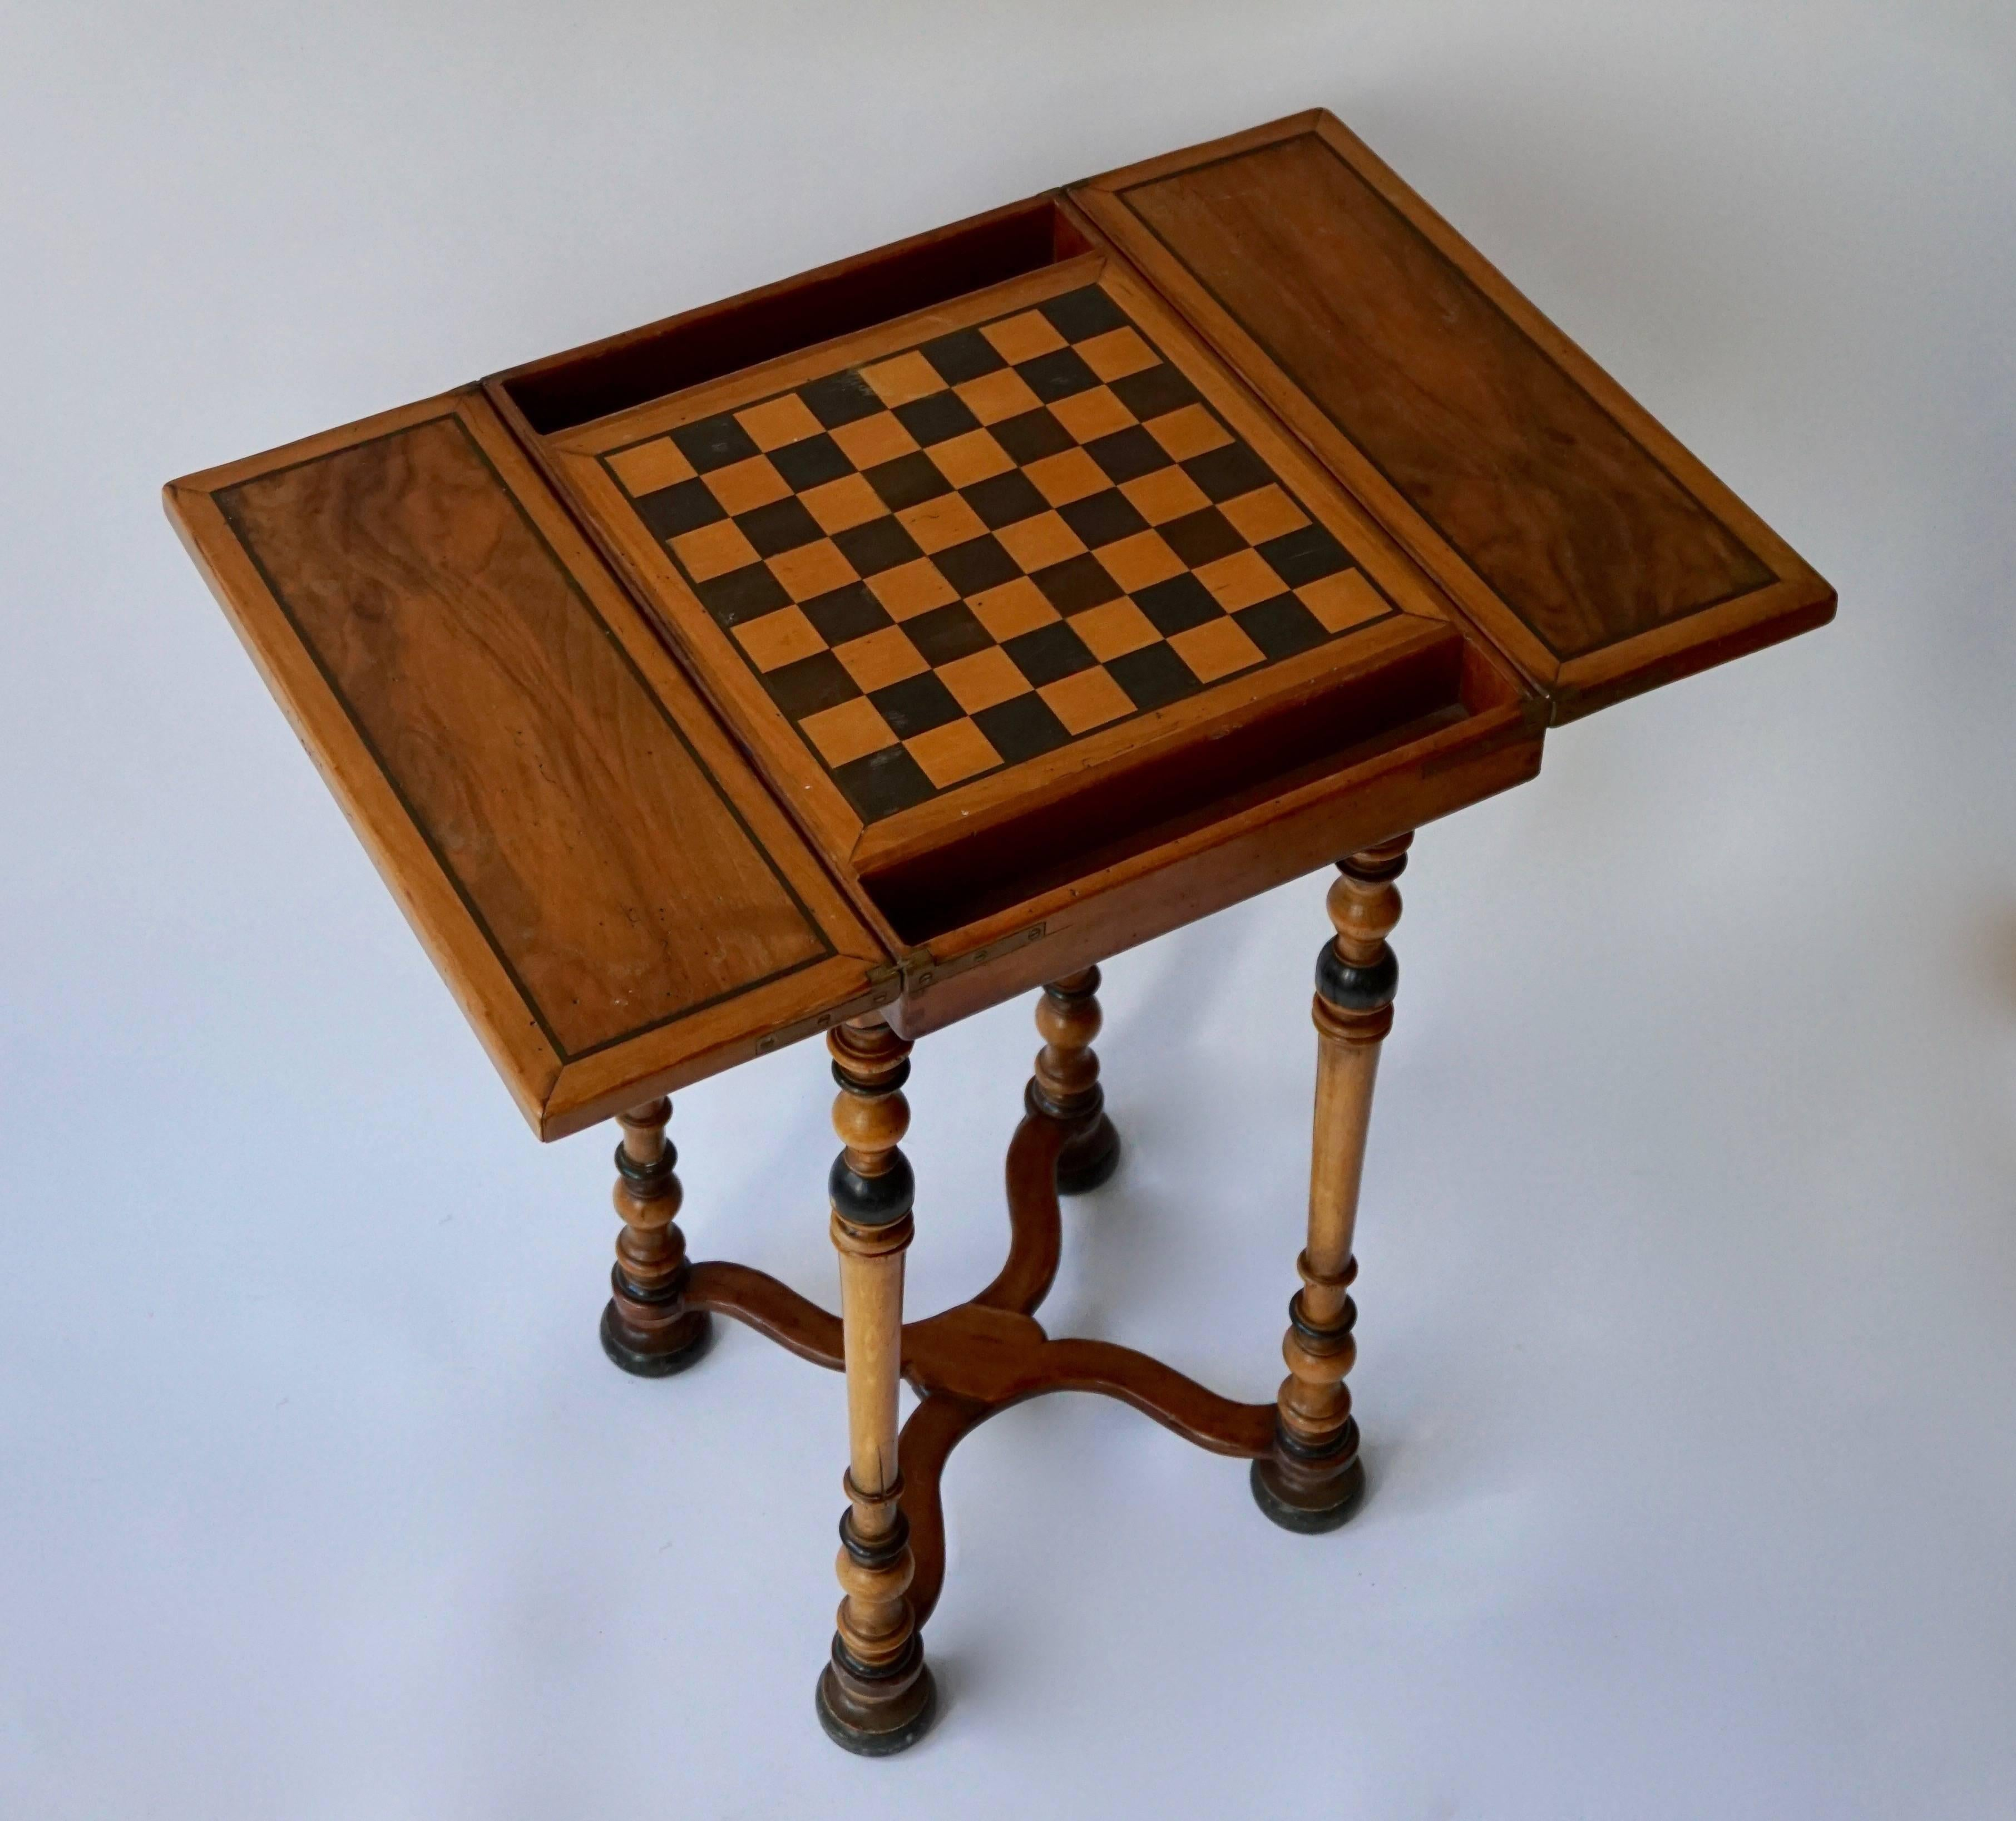 A Rare And Interesting Chess Games Table Presented In Very Good Antique  Condition. Measure: